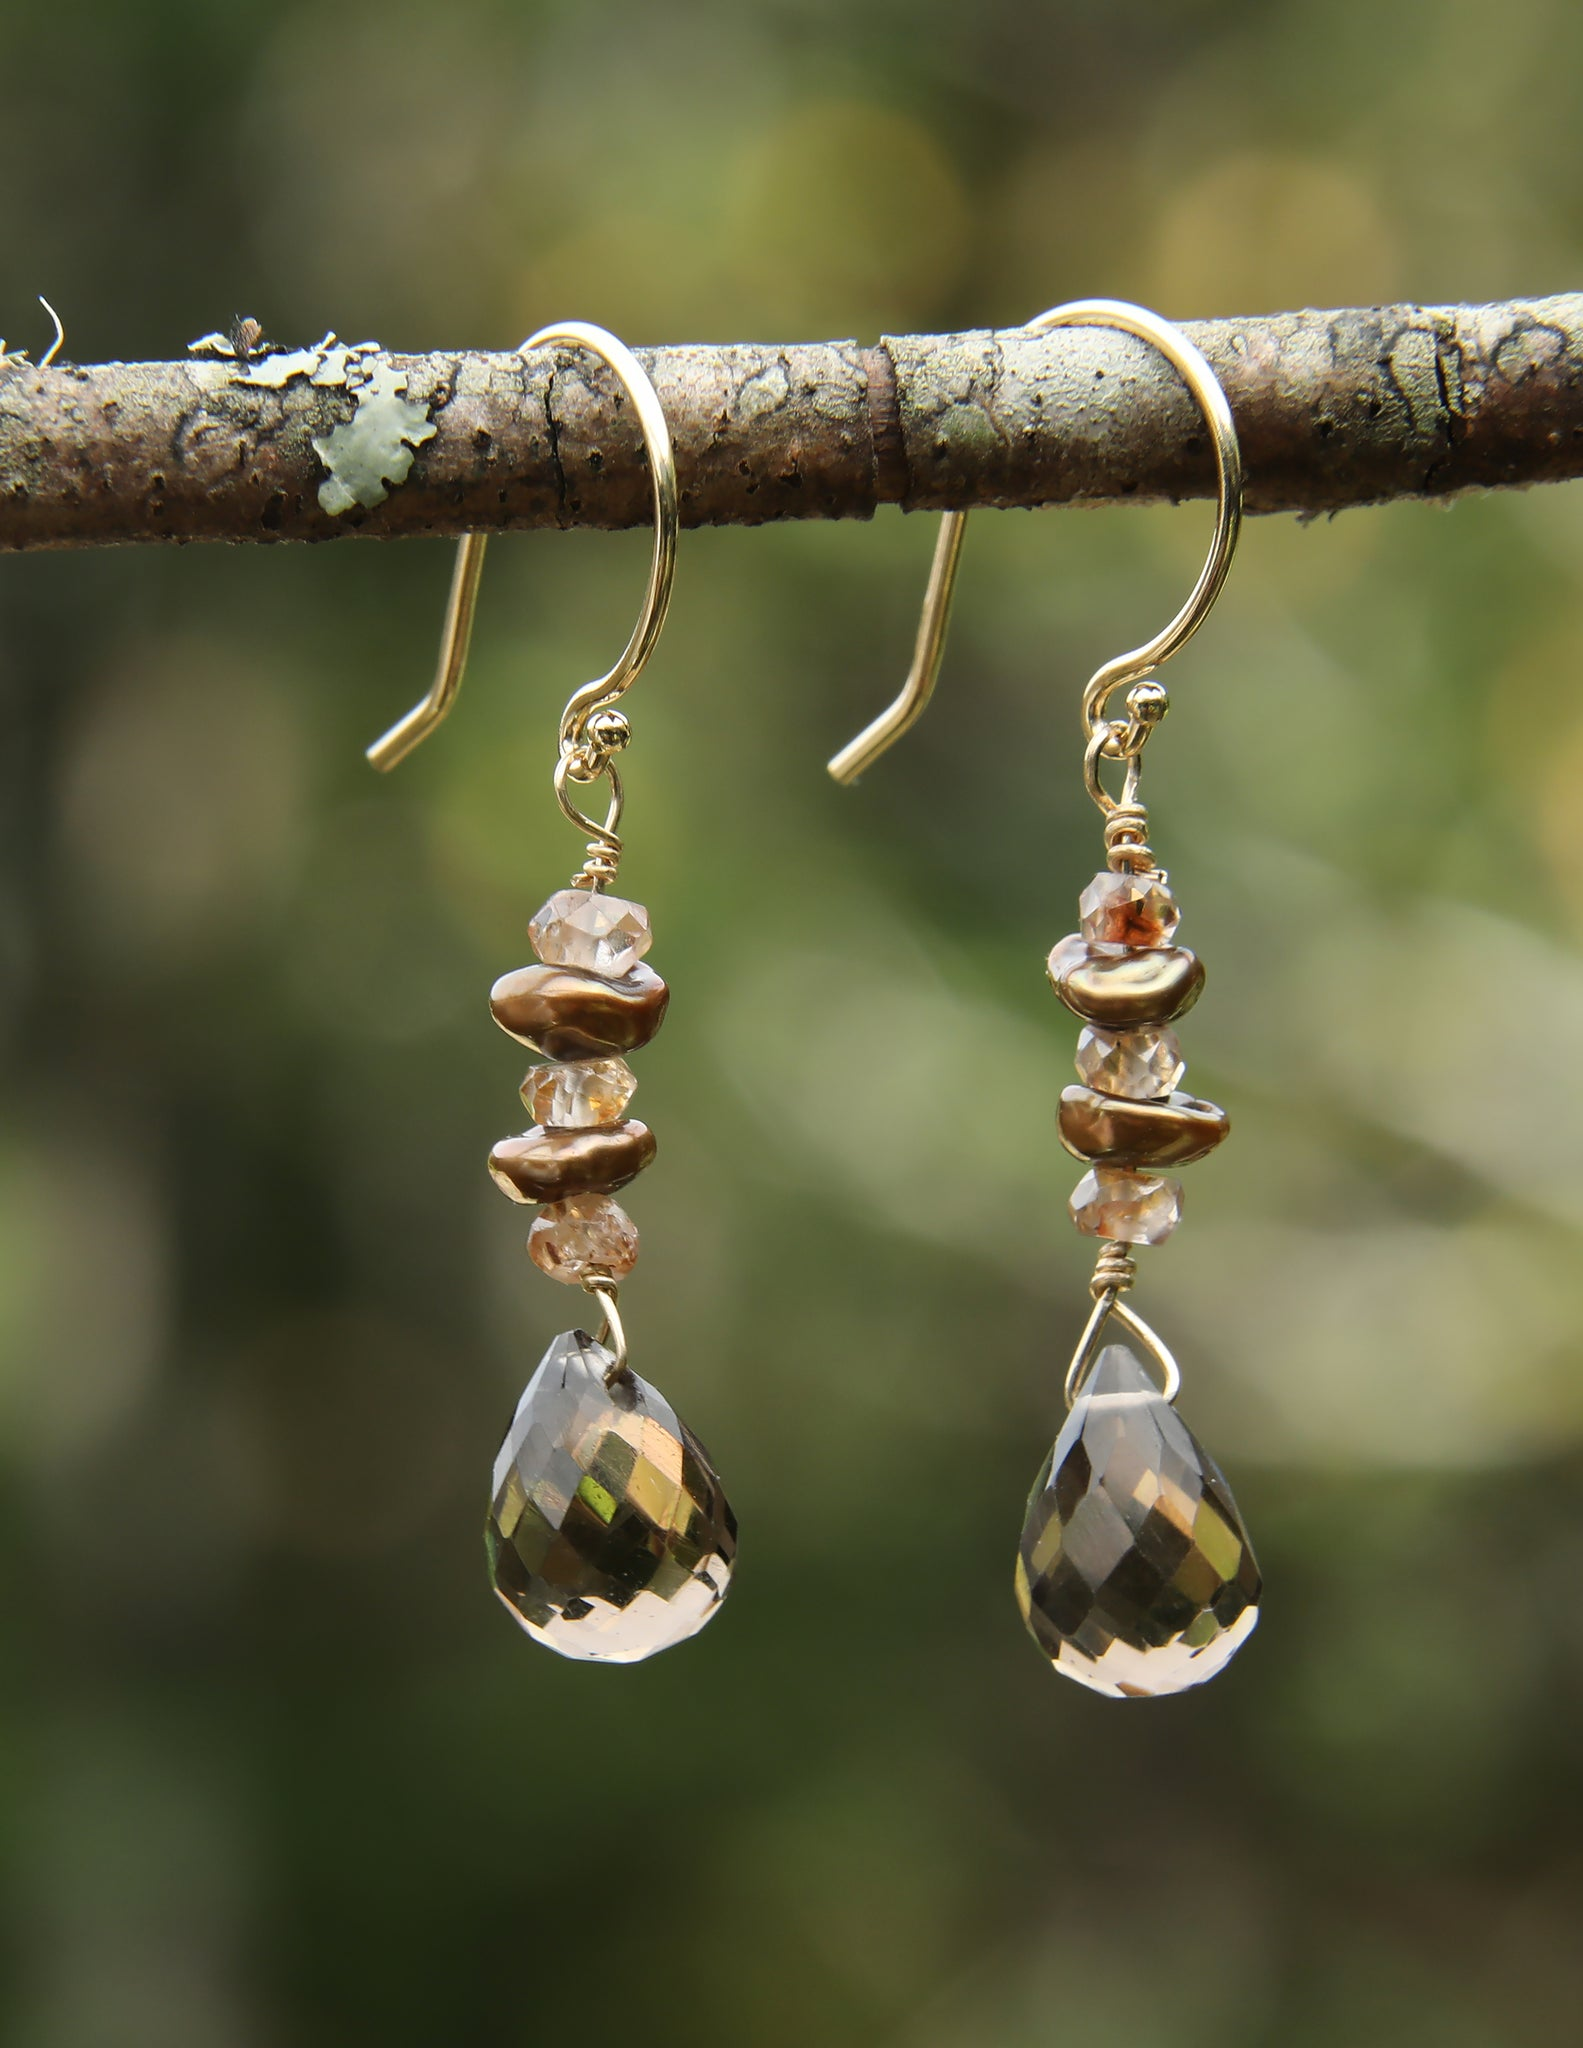 White Orchid Studios | Made in the USA | Handcrafted couture jewelry inspired by nature. |  Faceted smoky quartz briolettes float below olive, freshwater Keshi pearls and champagne zircon on 14k gold earwires. $100